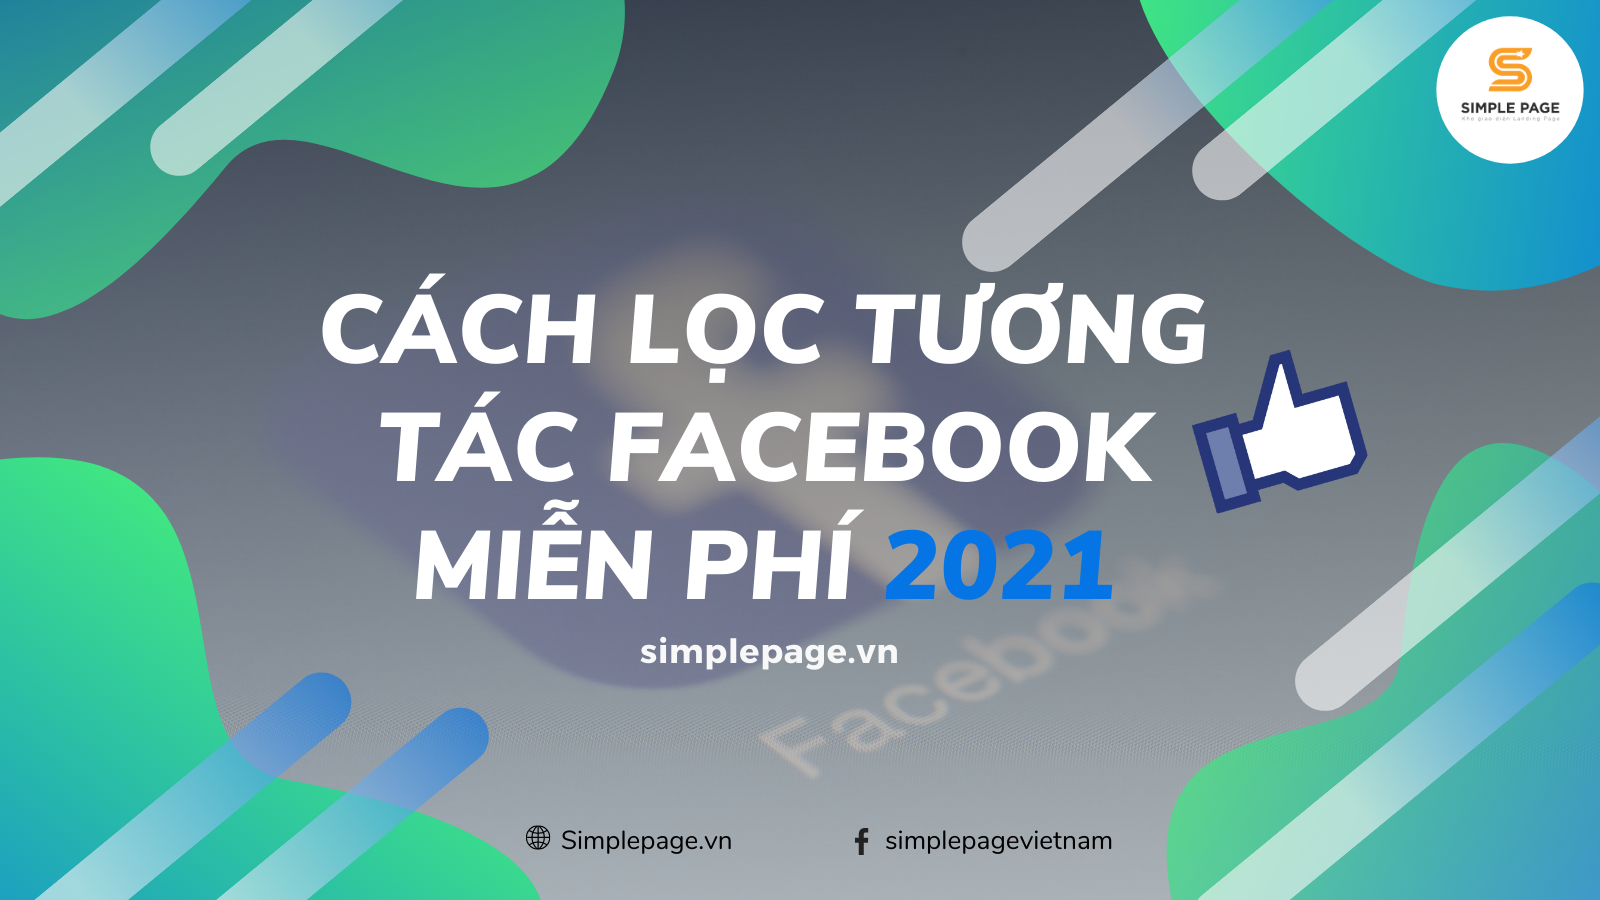 cach-loc-tuong-tac-facebook-moi-nhat-2021